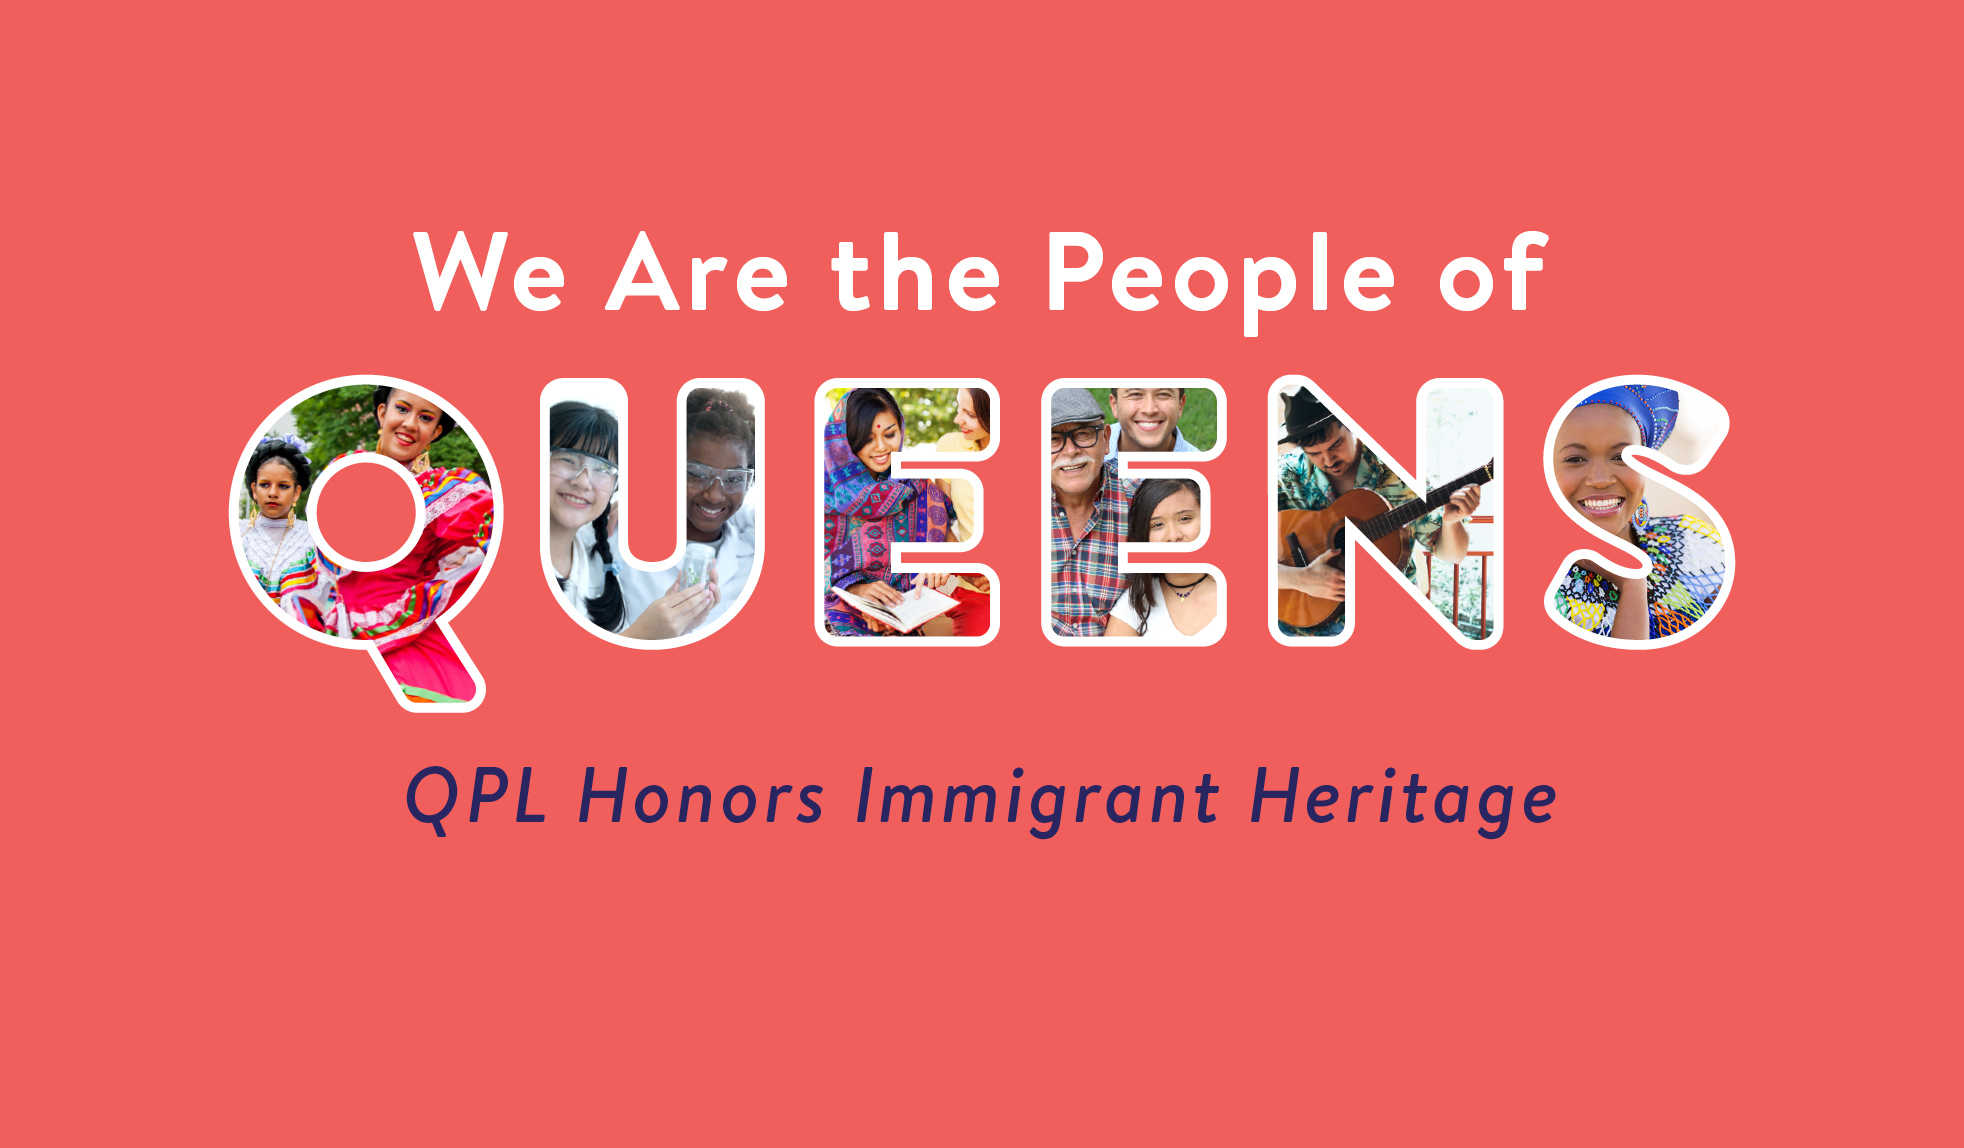 We're celebrating the immigrant heritage of the people of Queens with special programs.